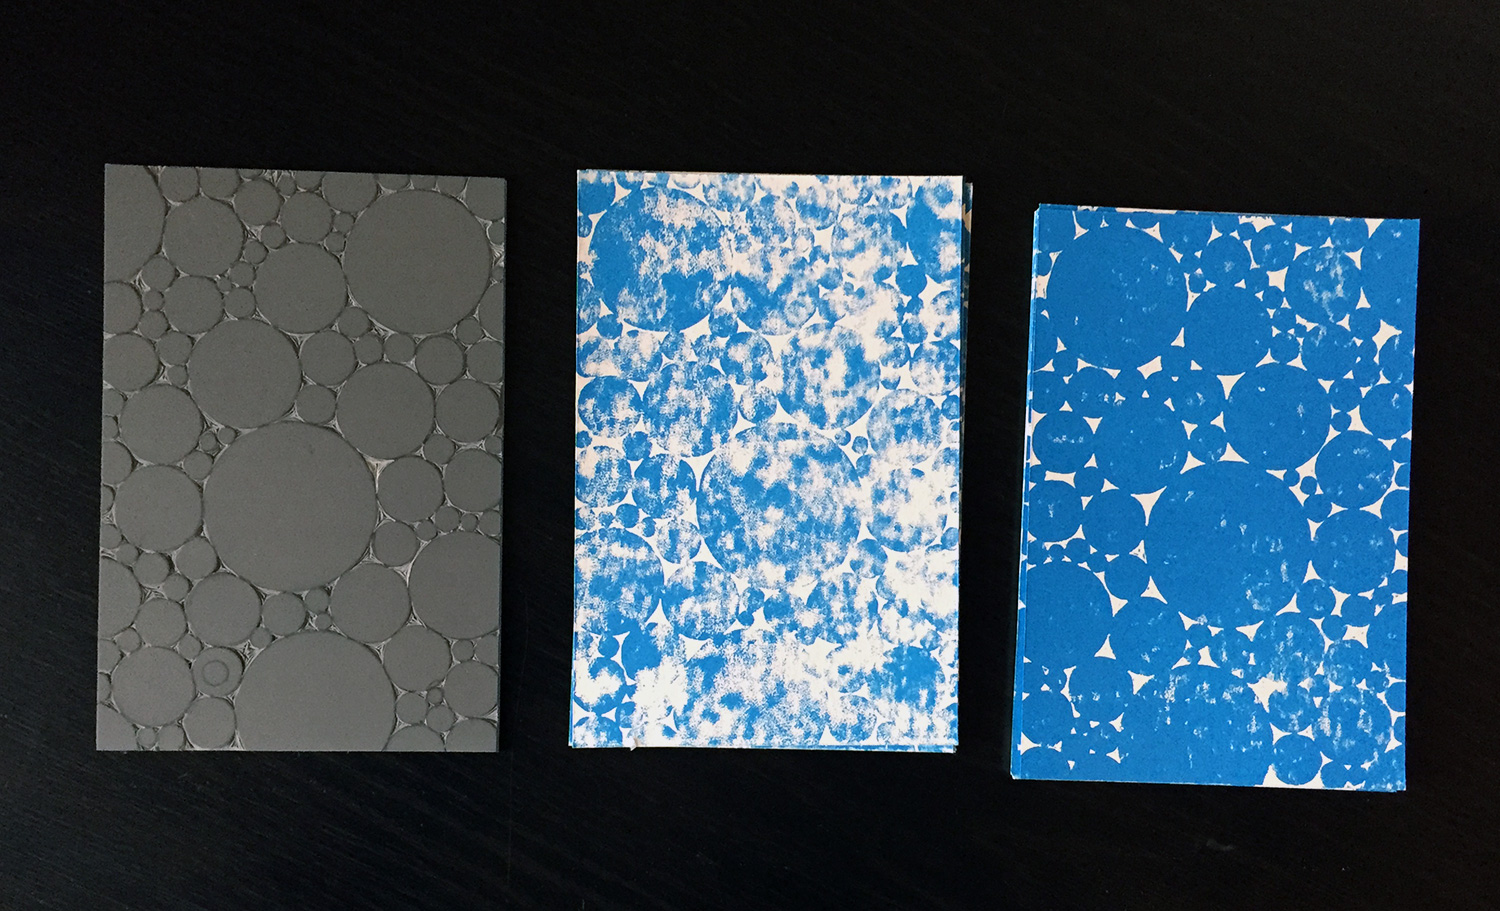 block, first print and final print.